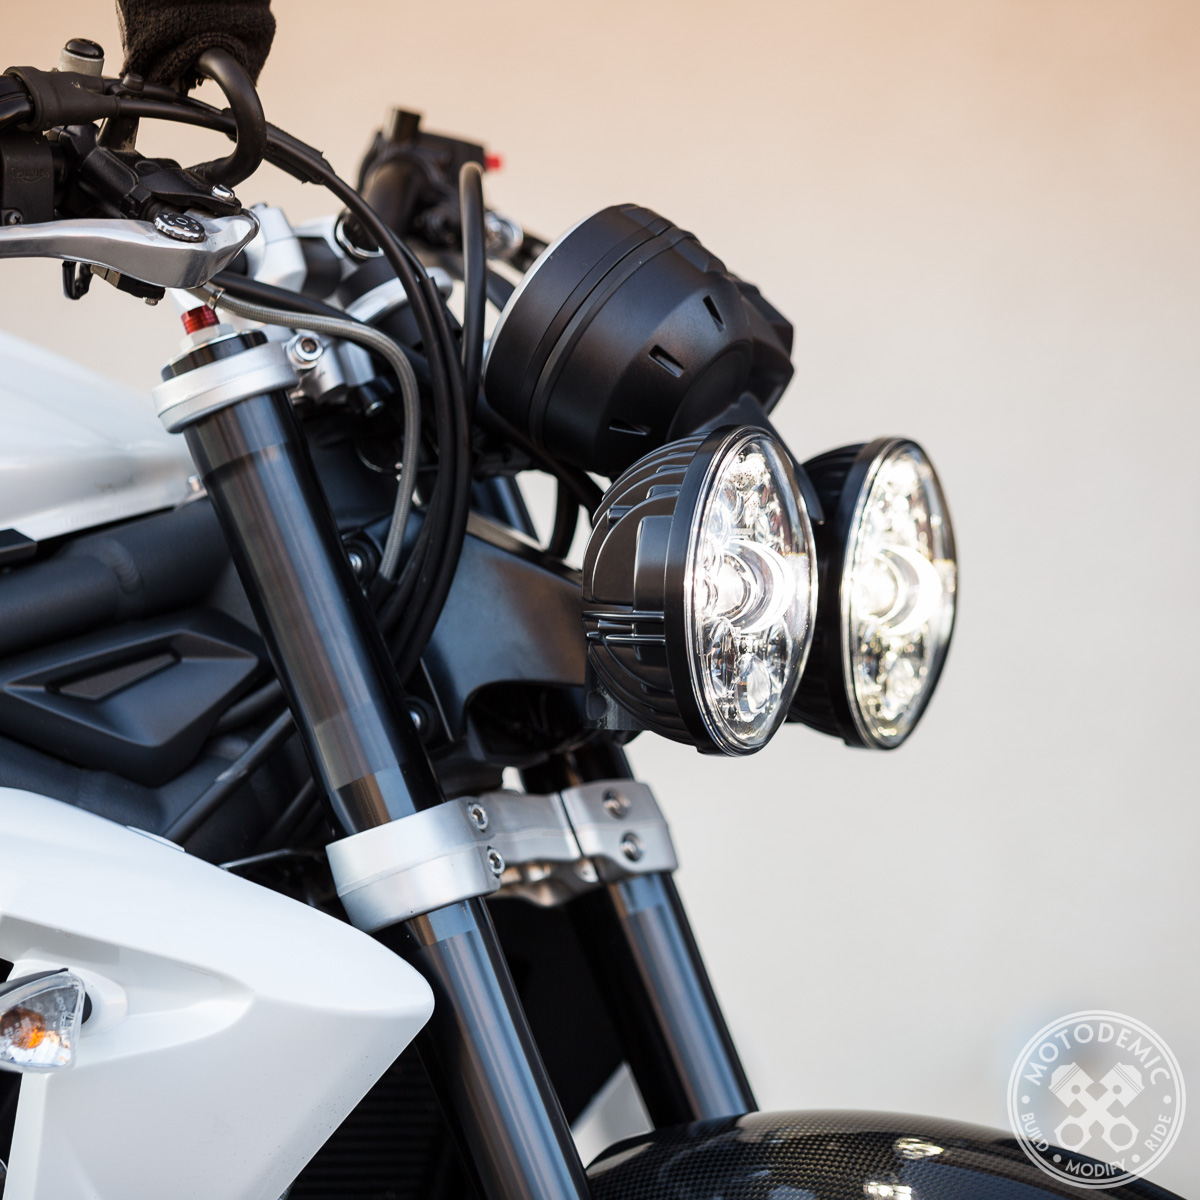 Bmw Usa Jobs >> Dual Round Headlight Conversion • MOTODEMIC